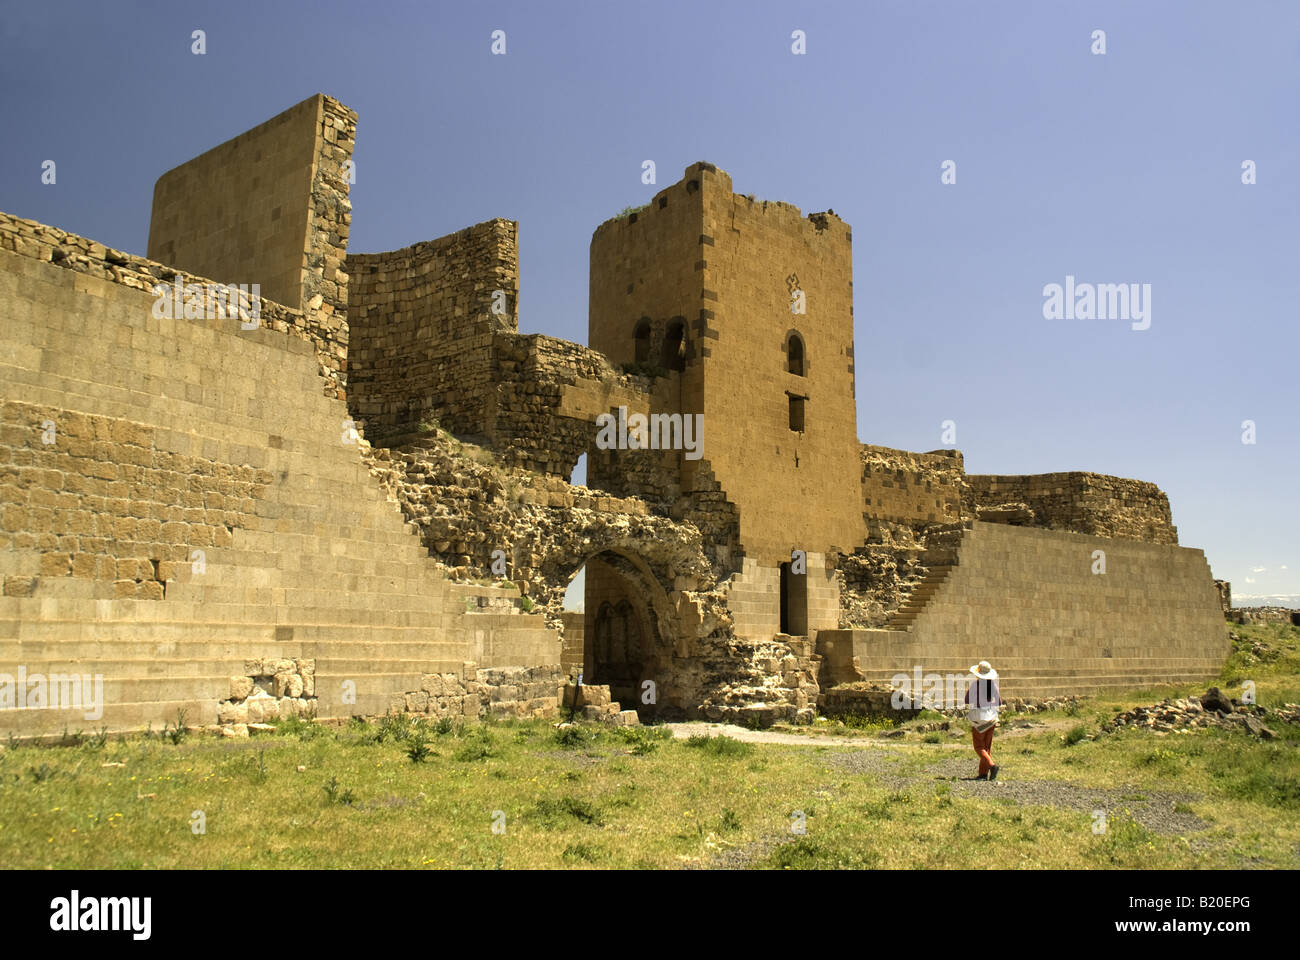 Remains of Lion Gate in the Town Wall at Ani, ruined capital of Armenian Kingdom, on eastern Turkey border with - Stock Image